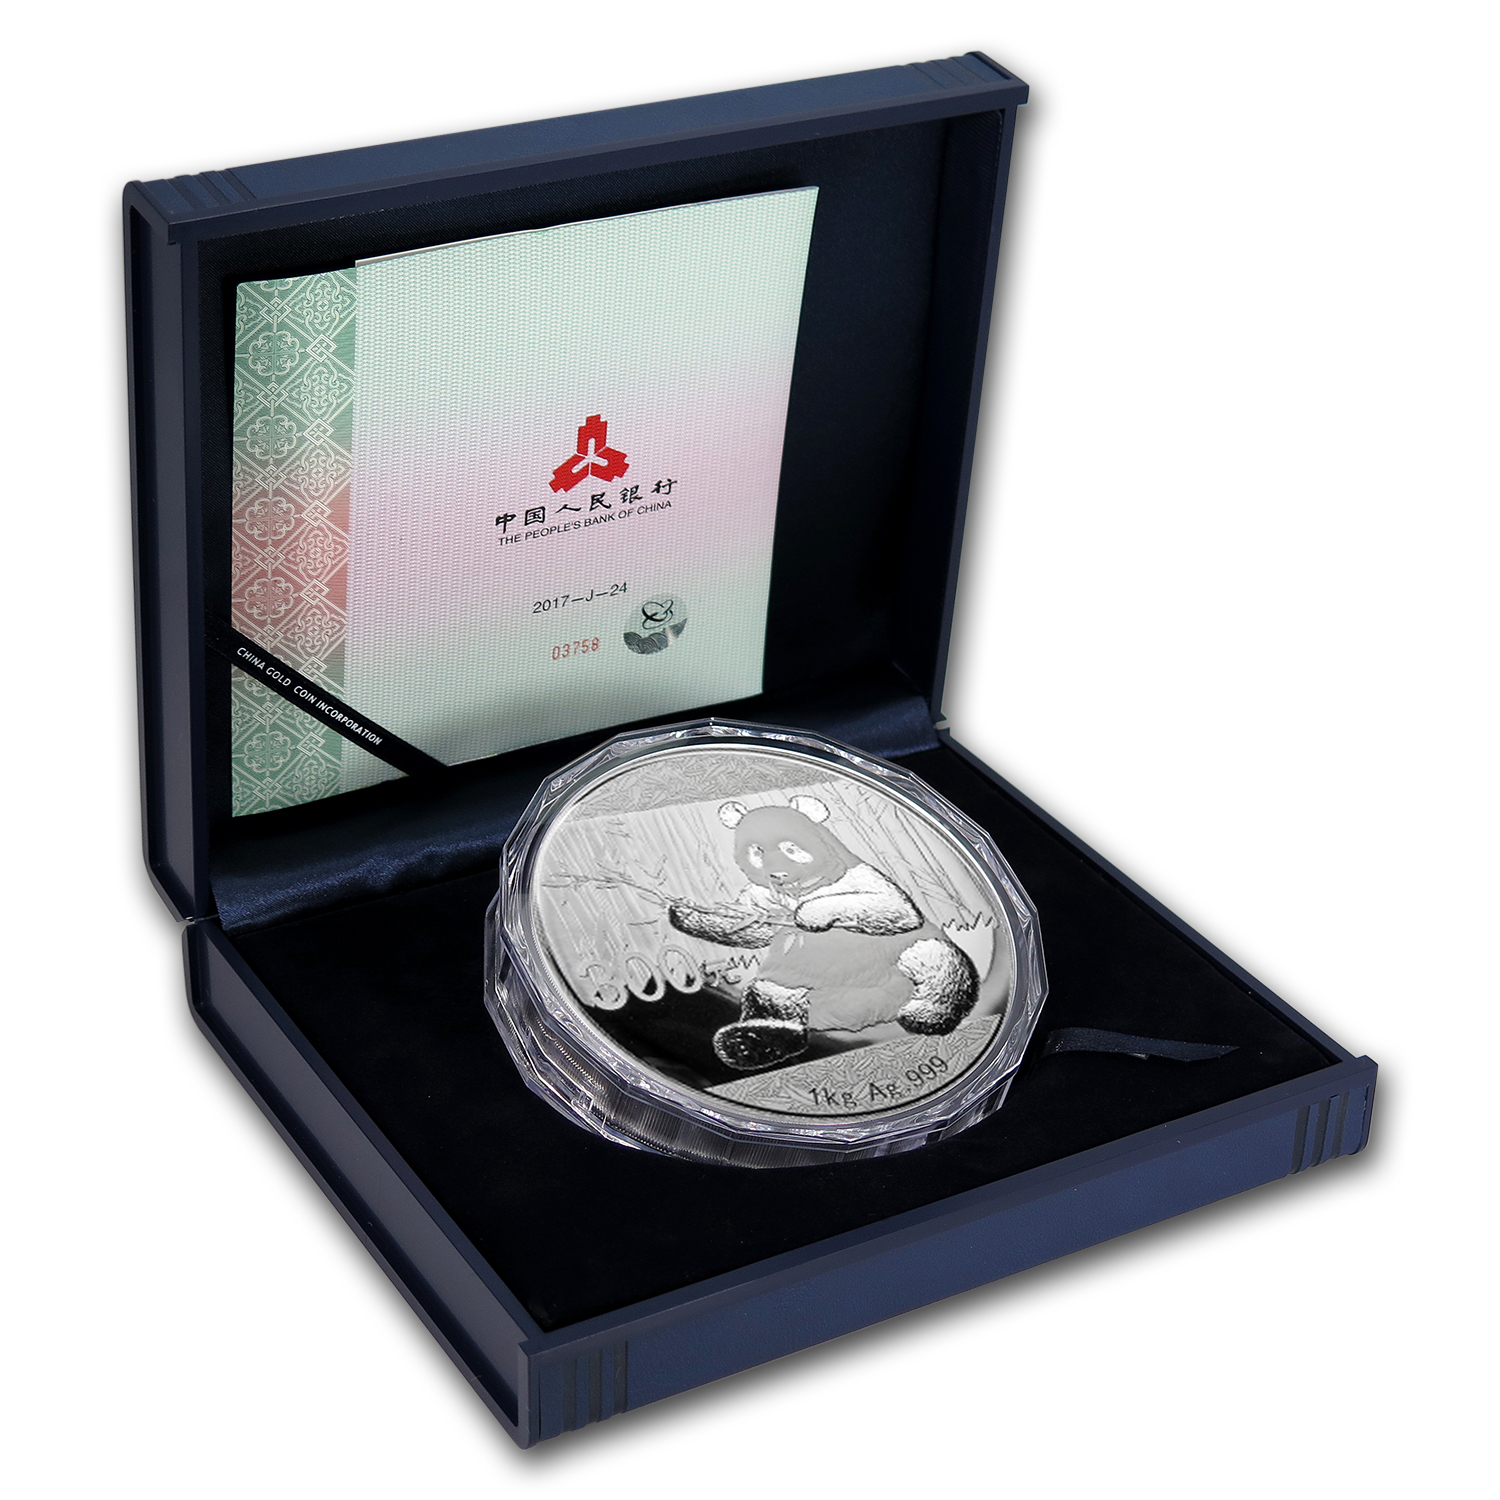 2017 China 1 kilo Silver Panda Proof (w/Box & COA)